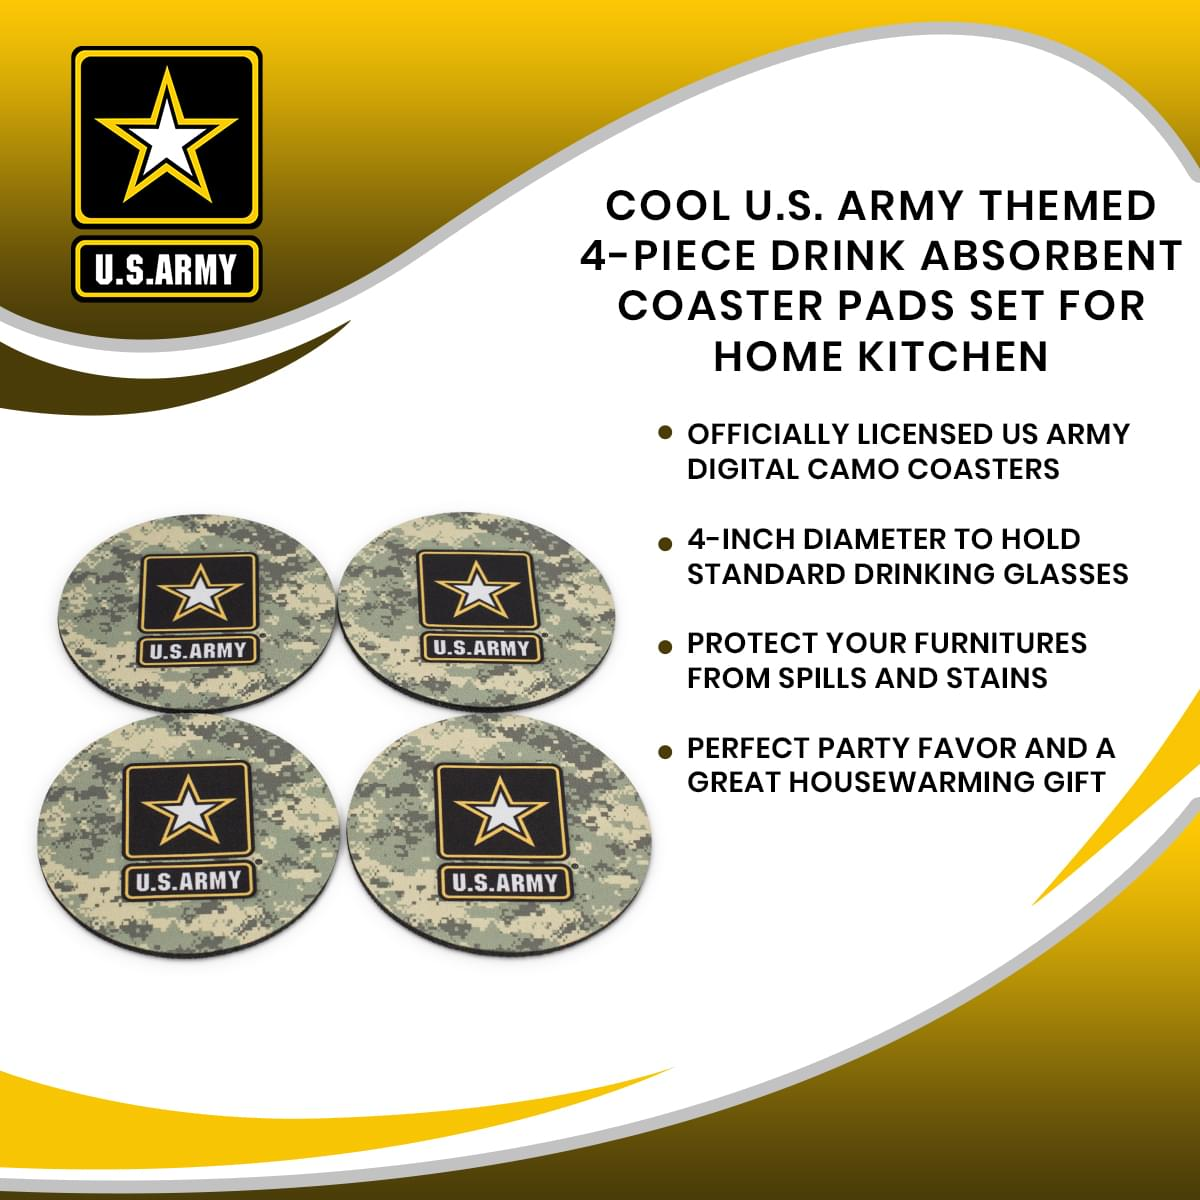 Cool U.S. Army Themed 4-Piece Drink Absorbent Coaster Pads Set for Home Kitchen